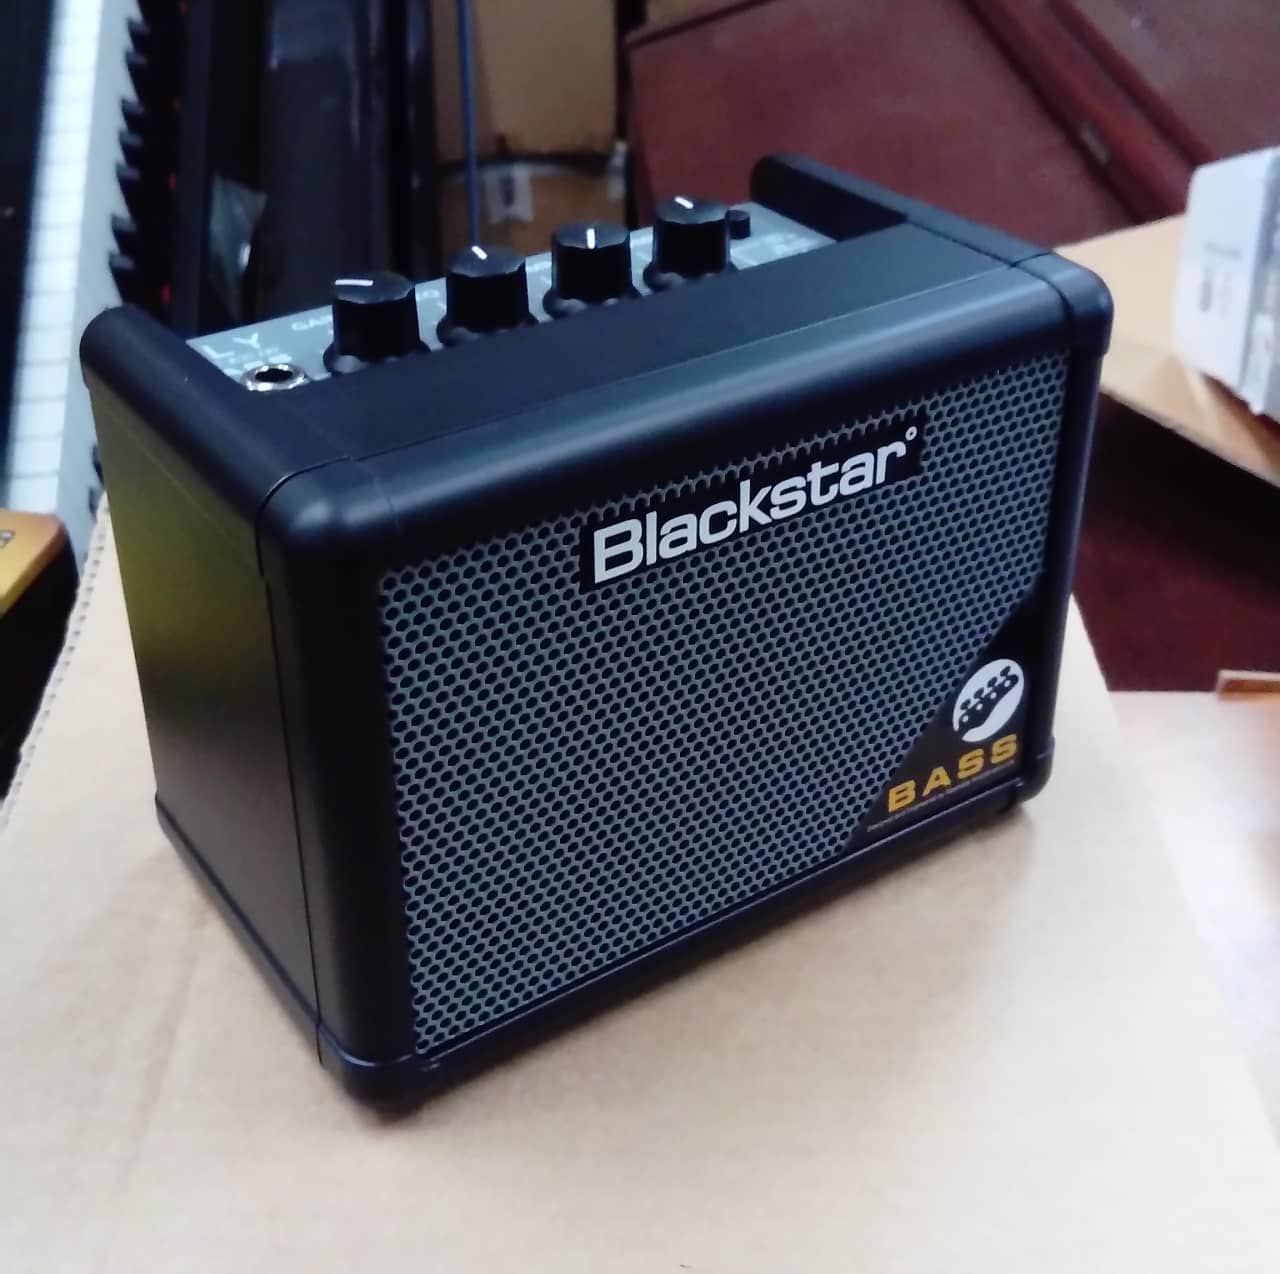 blackstar fly 3 bass 1x3 3w battery powered mini bass combo reverb. Black Bedroom Furniture Sets. Home Design Ideas